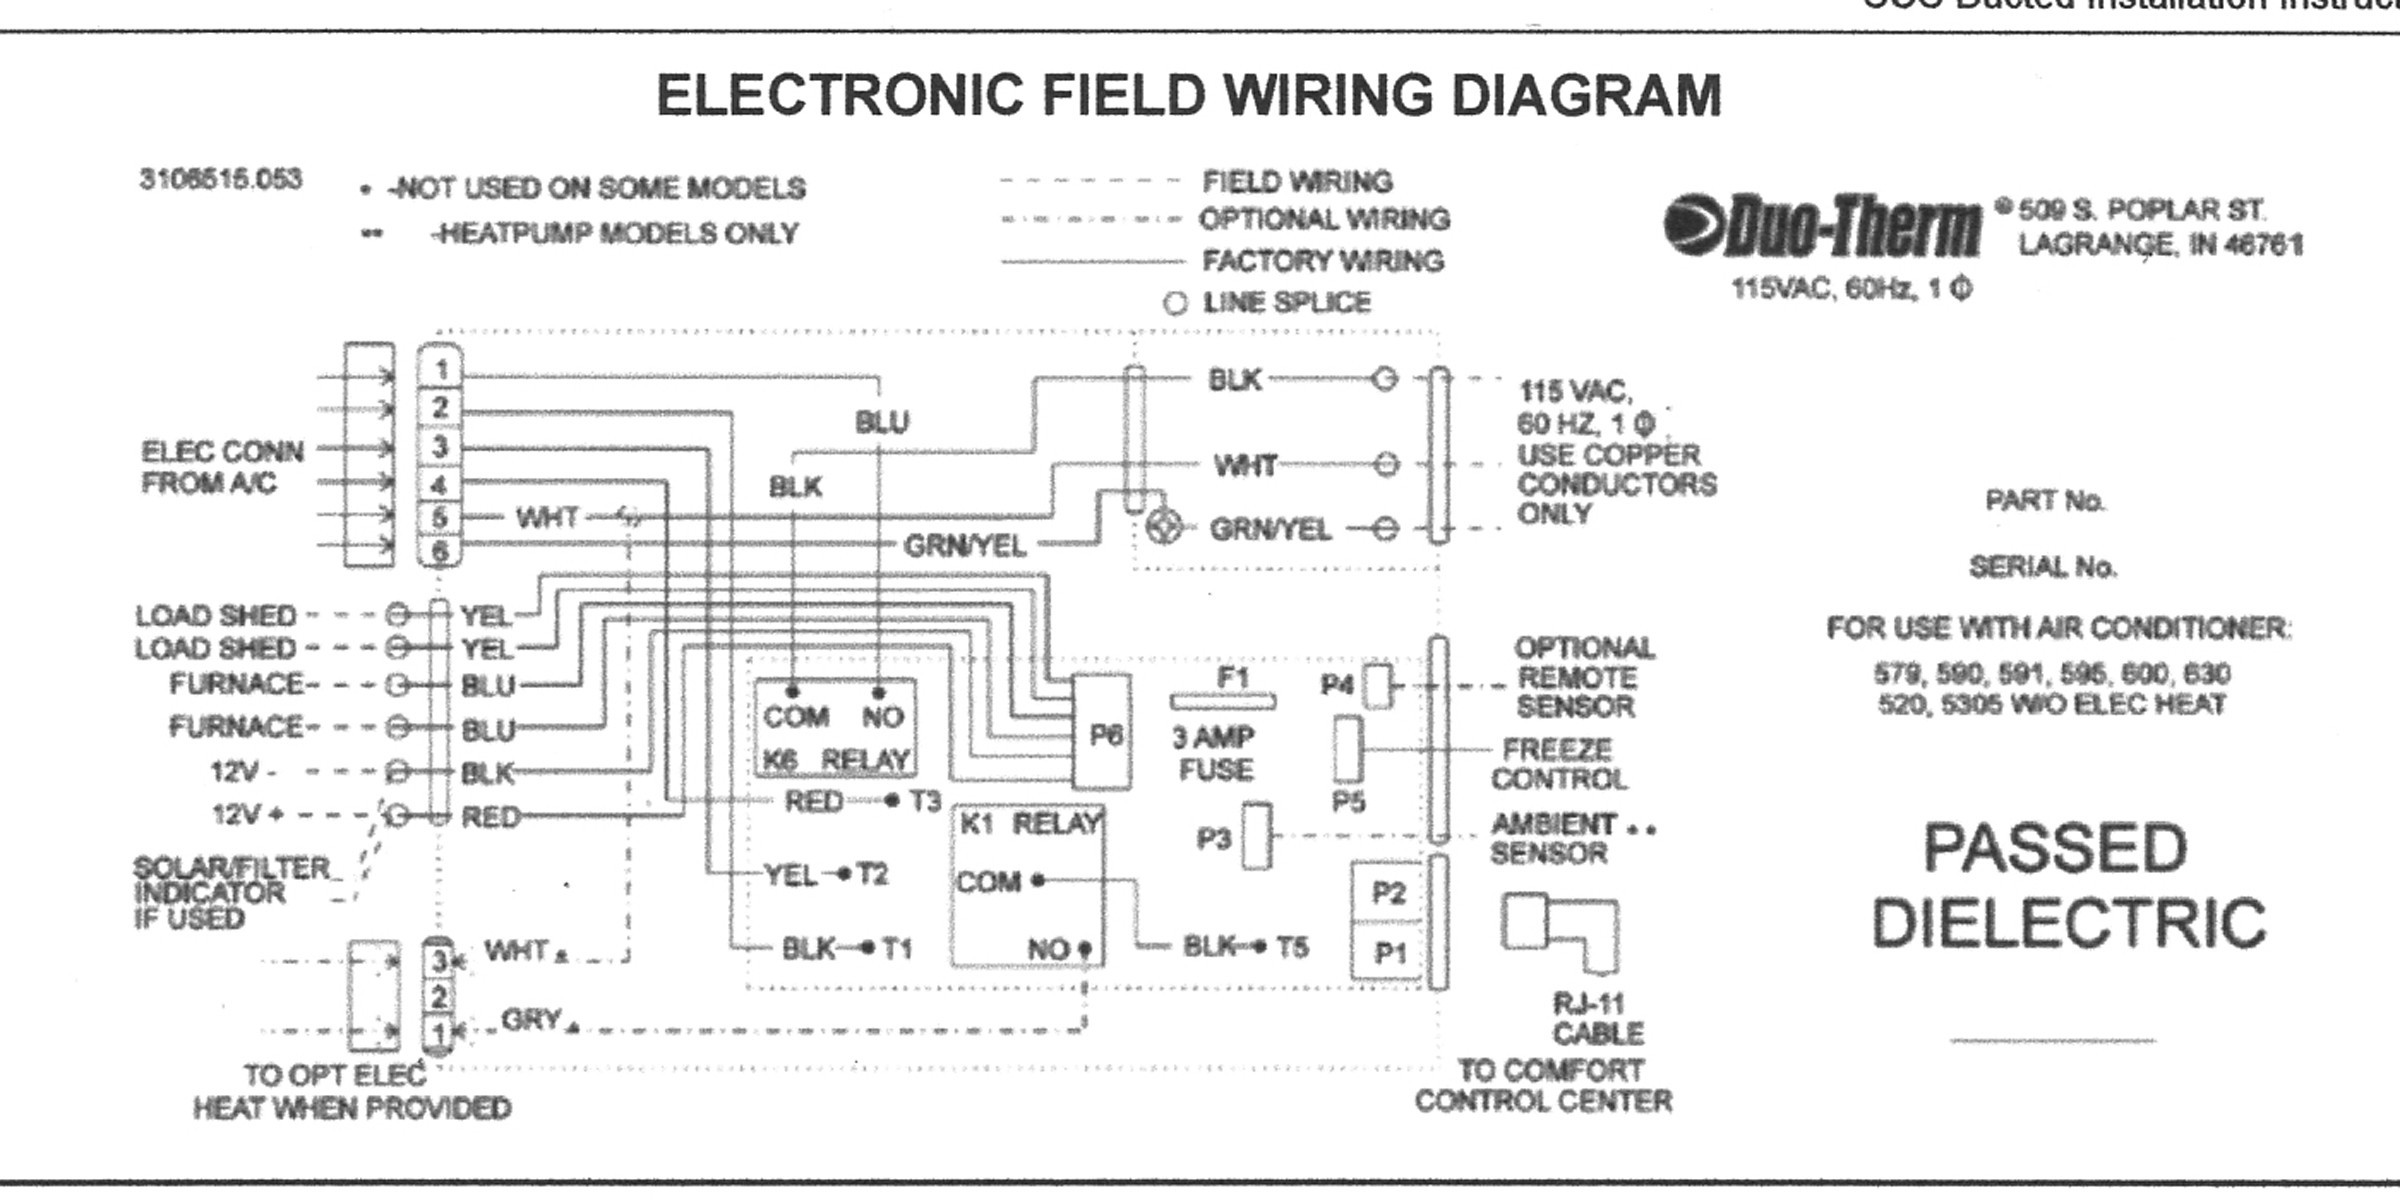 Duo therm Rv Air Conditioner Wiring Diagram Fresh Duo therm thermostat Wiring Diagram Diagram Of Duo therm Rv Air Conditioner Wiring Diagram Duo therm thermostat Wiring Diagram Troubleshooting Free